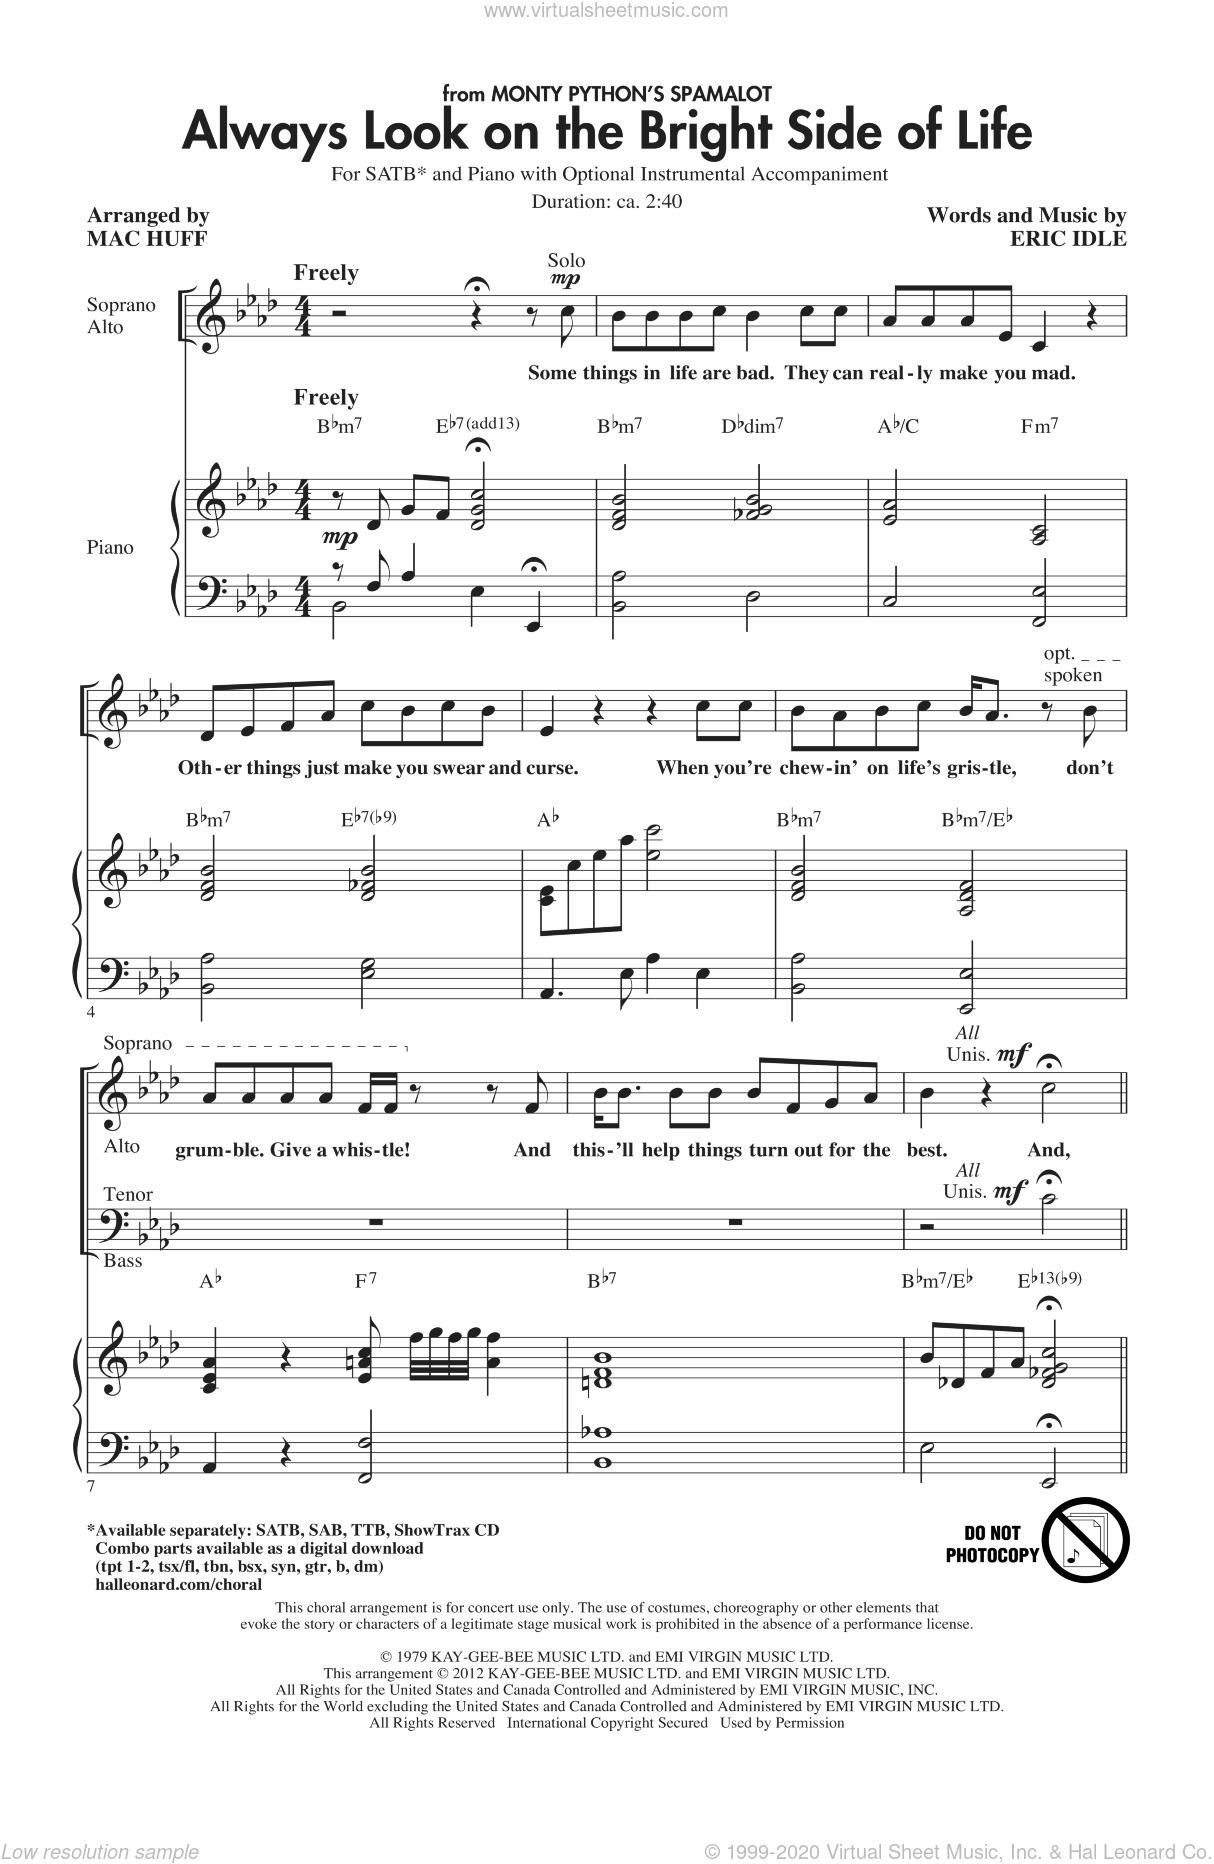 Always Look On The Bright Side Of Life sheet music for choir and piano (SATB) by Eric Idle